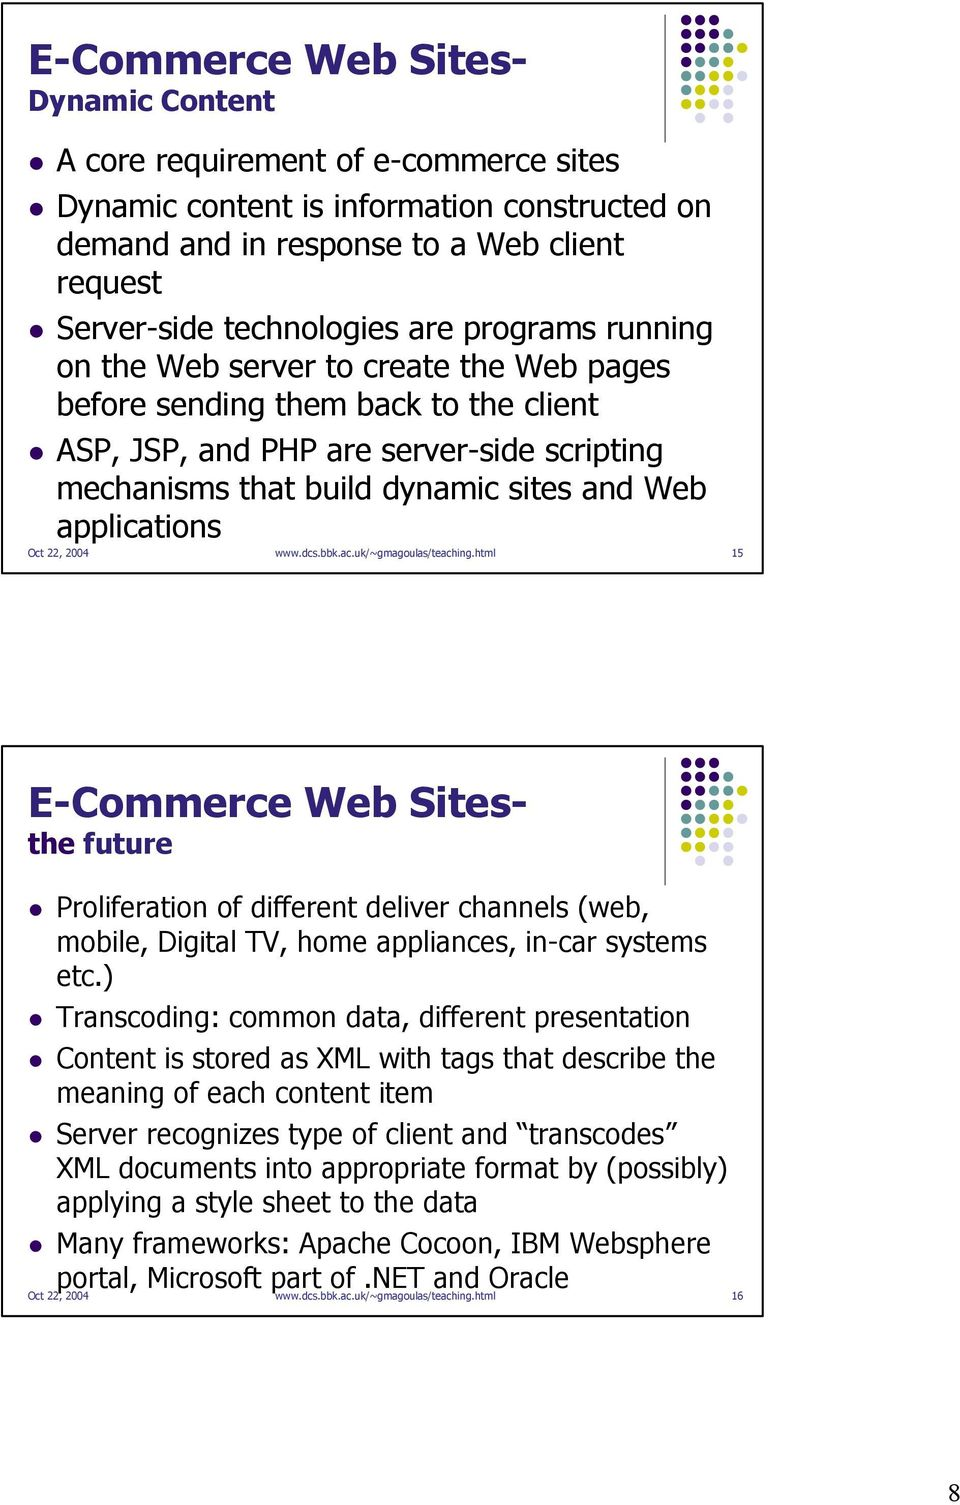 Oct 22, 2004 www.dcs.bbk.ac.uk/~gmagoulas/teaching.html 15 E-Commerce Web Sitesthe future Proliferation of different deliver channels (web, mobile, Digital TV, home appliances, in-car systems etc.